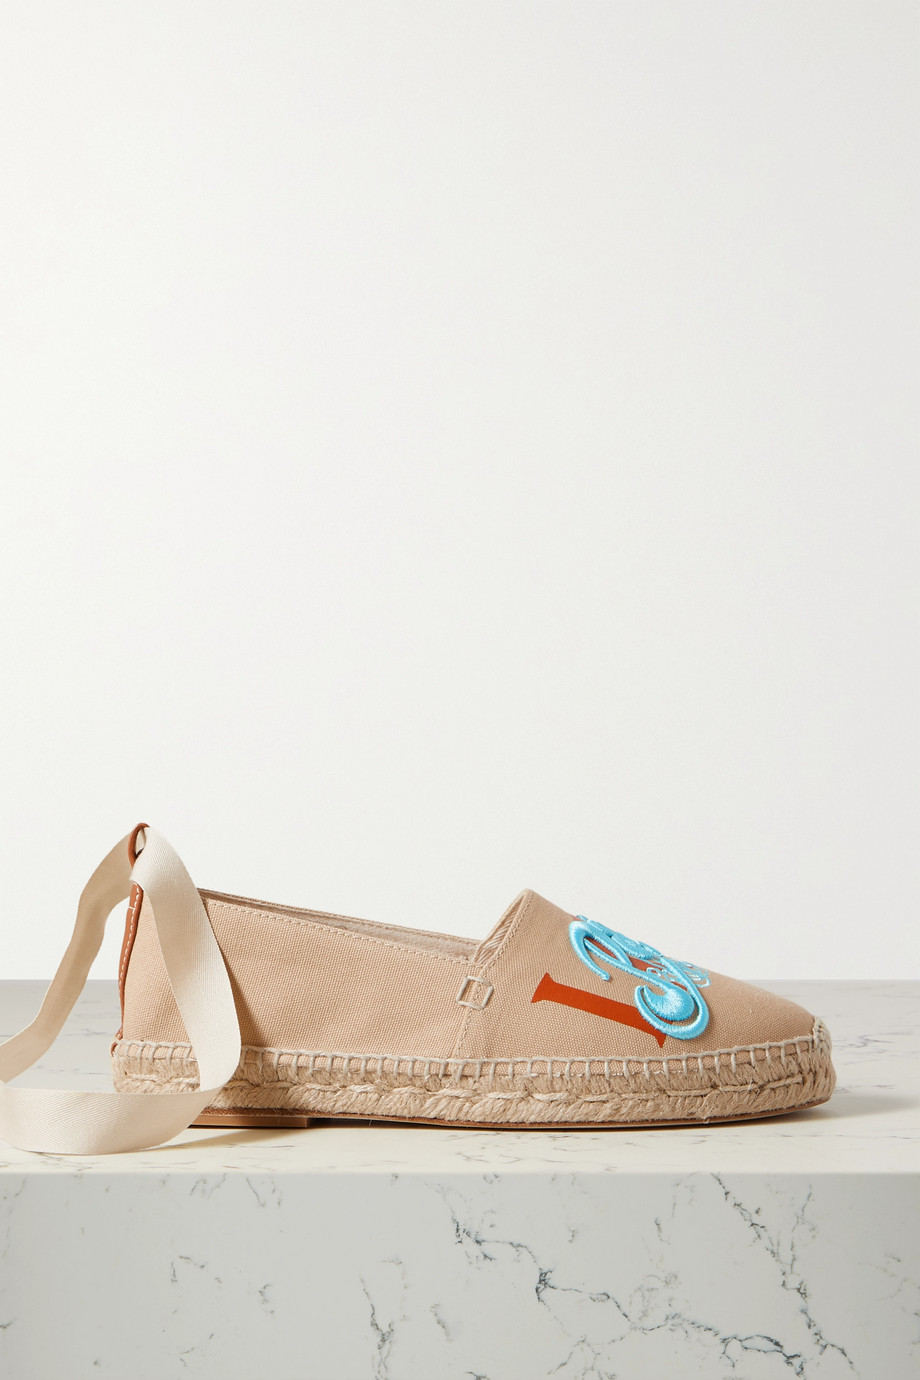 LOEWE + Paula's Ibiza embroidered printed canvas espadrilles